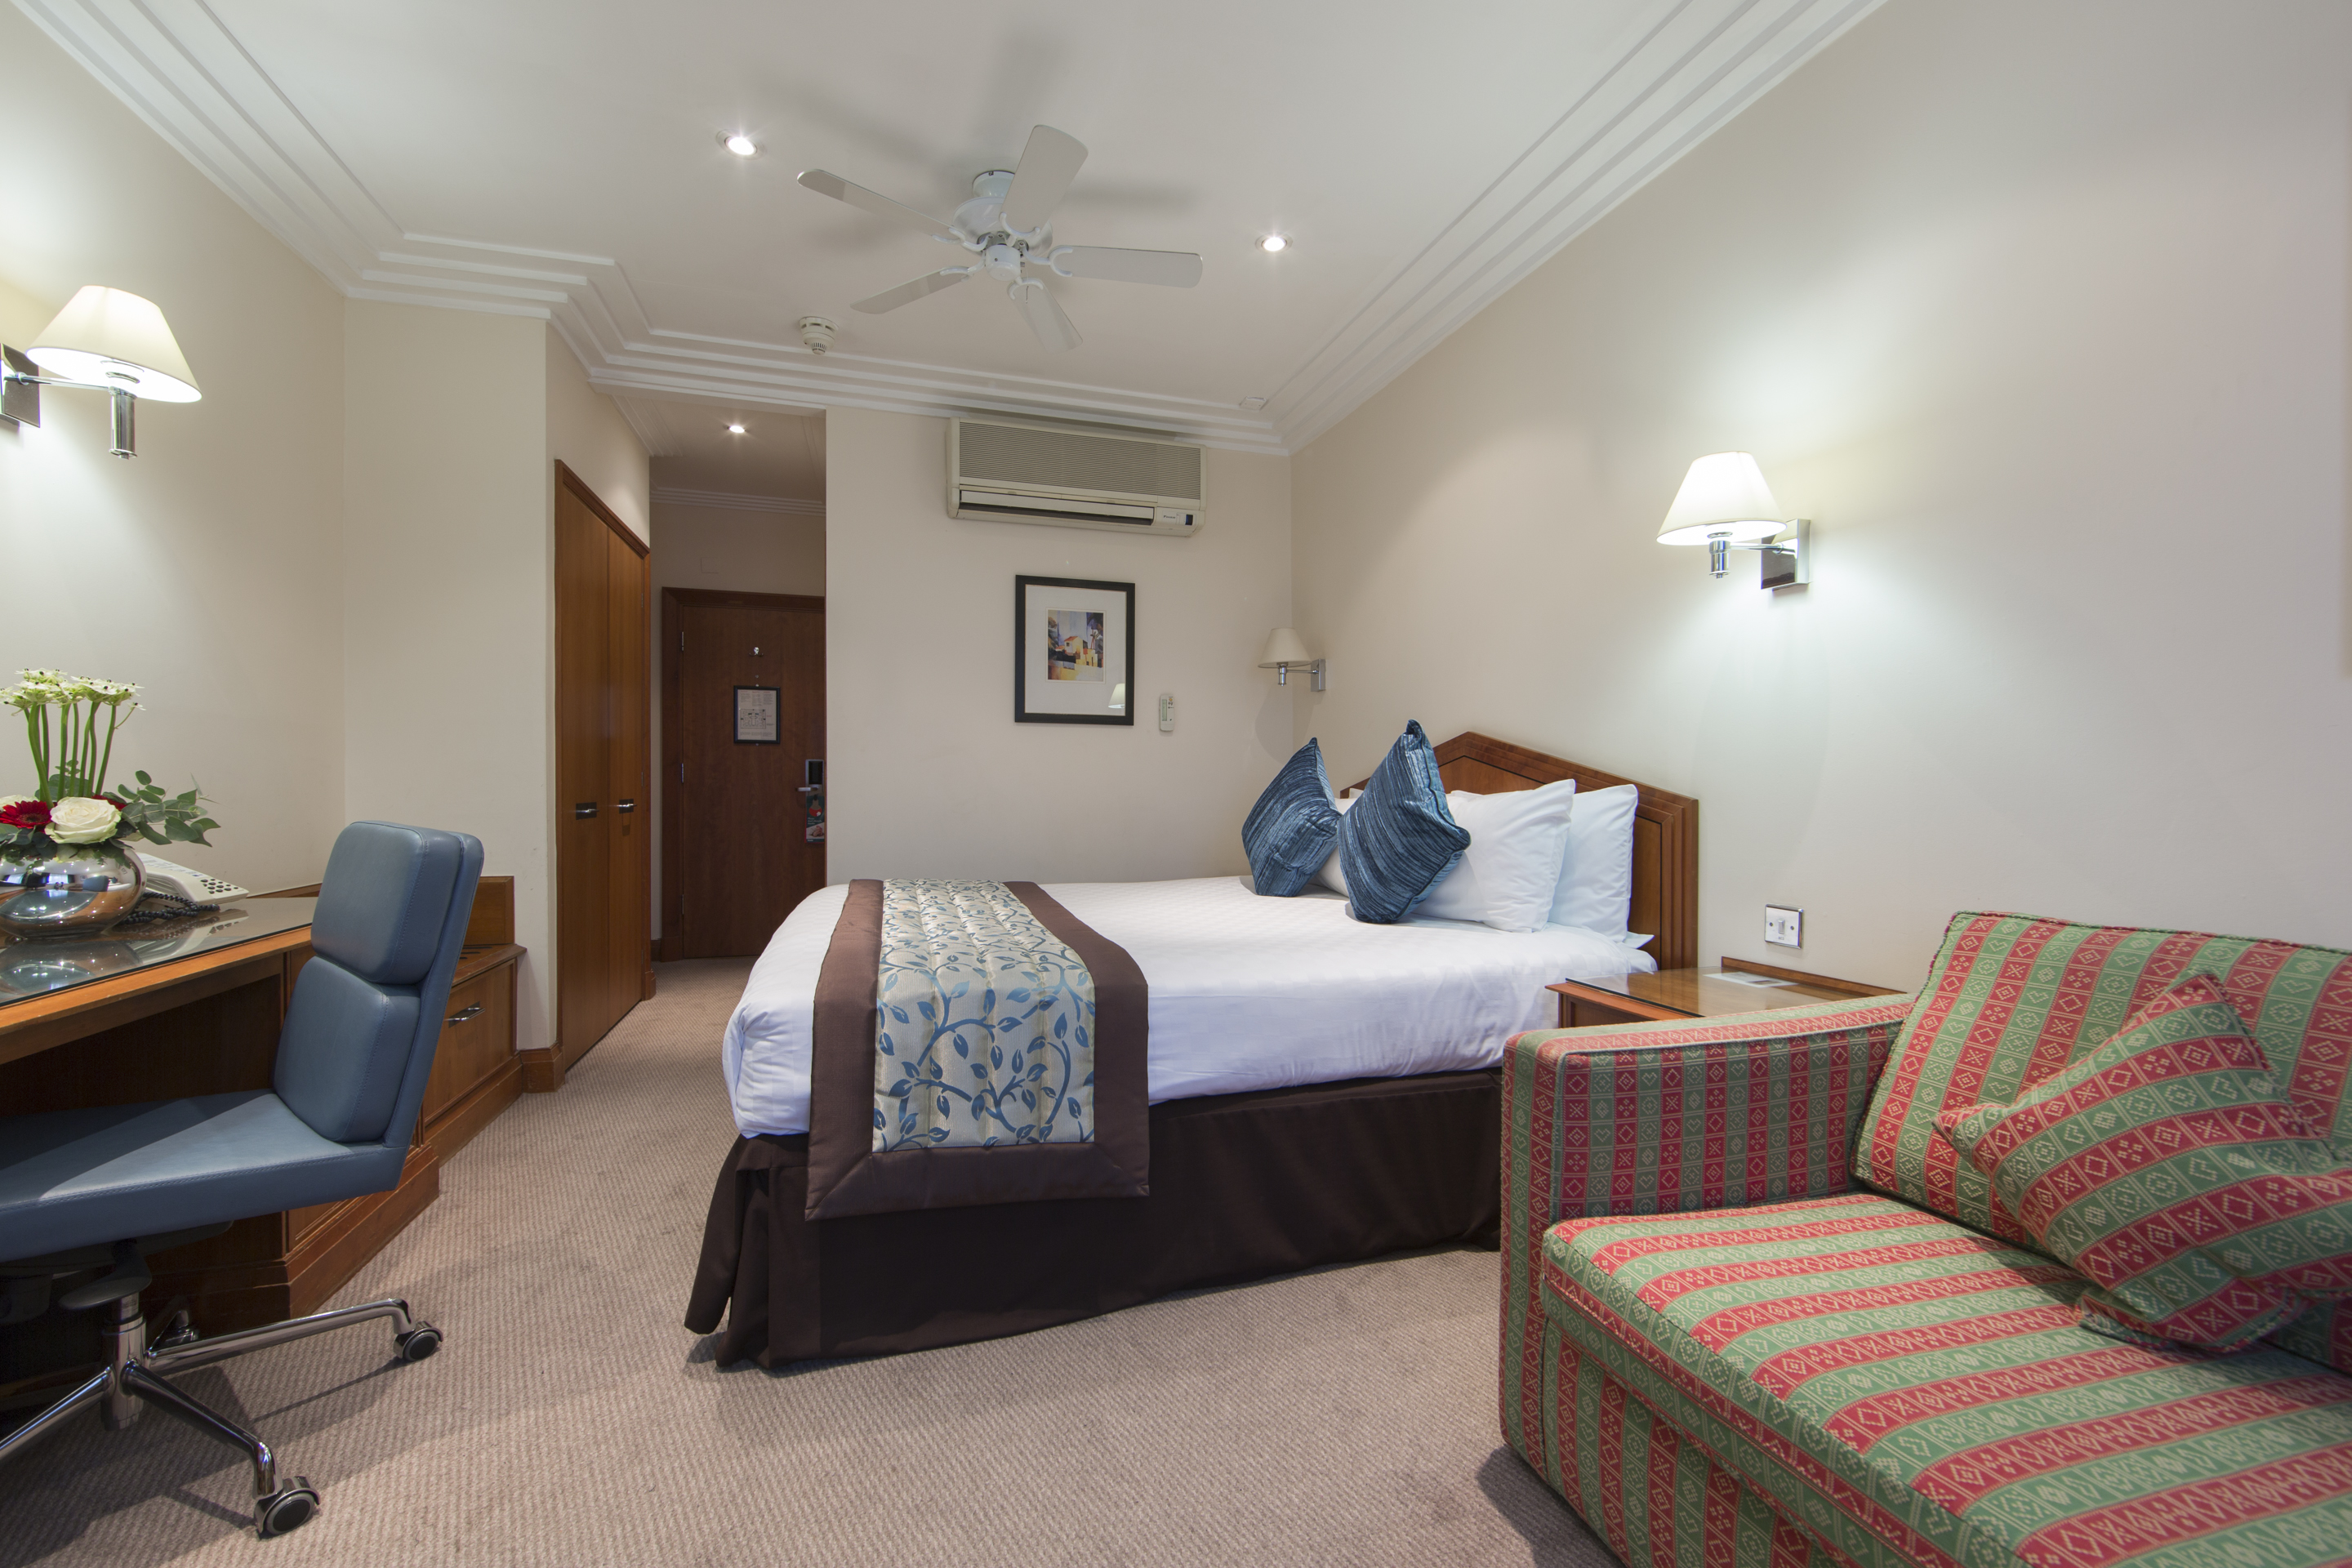 https://www.hotelsbyday.com/_data/default-hotel_image/0/4365/premium-king-room.jpg